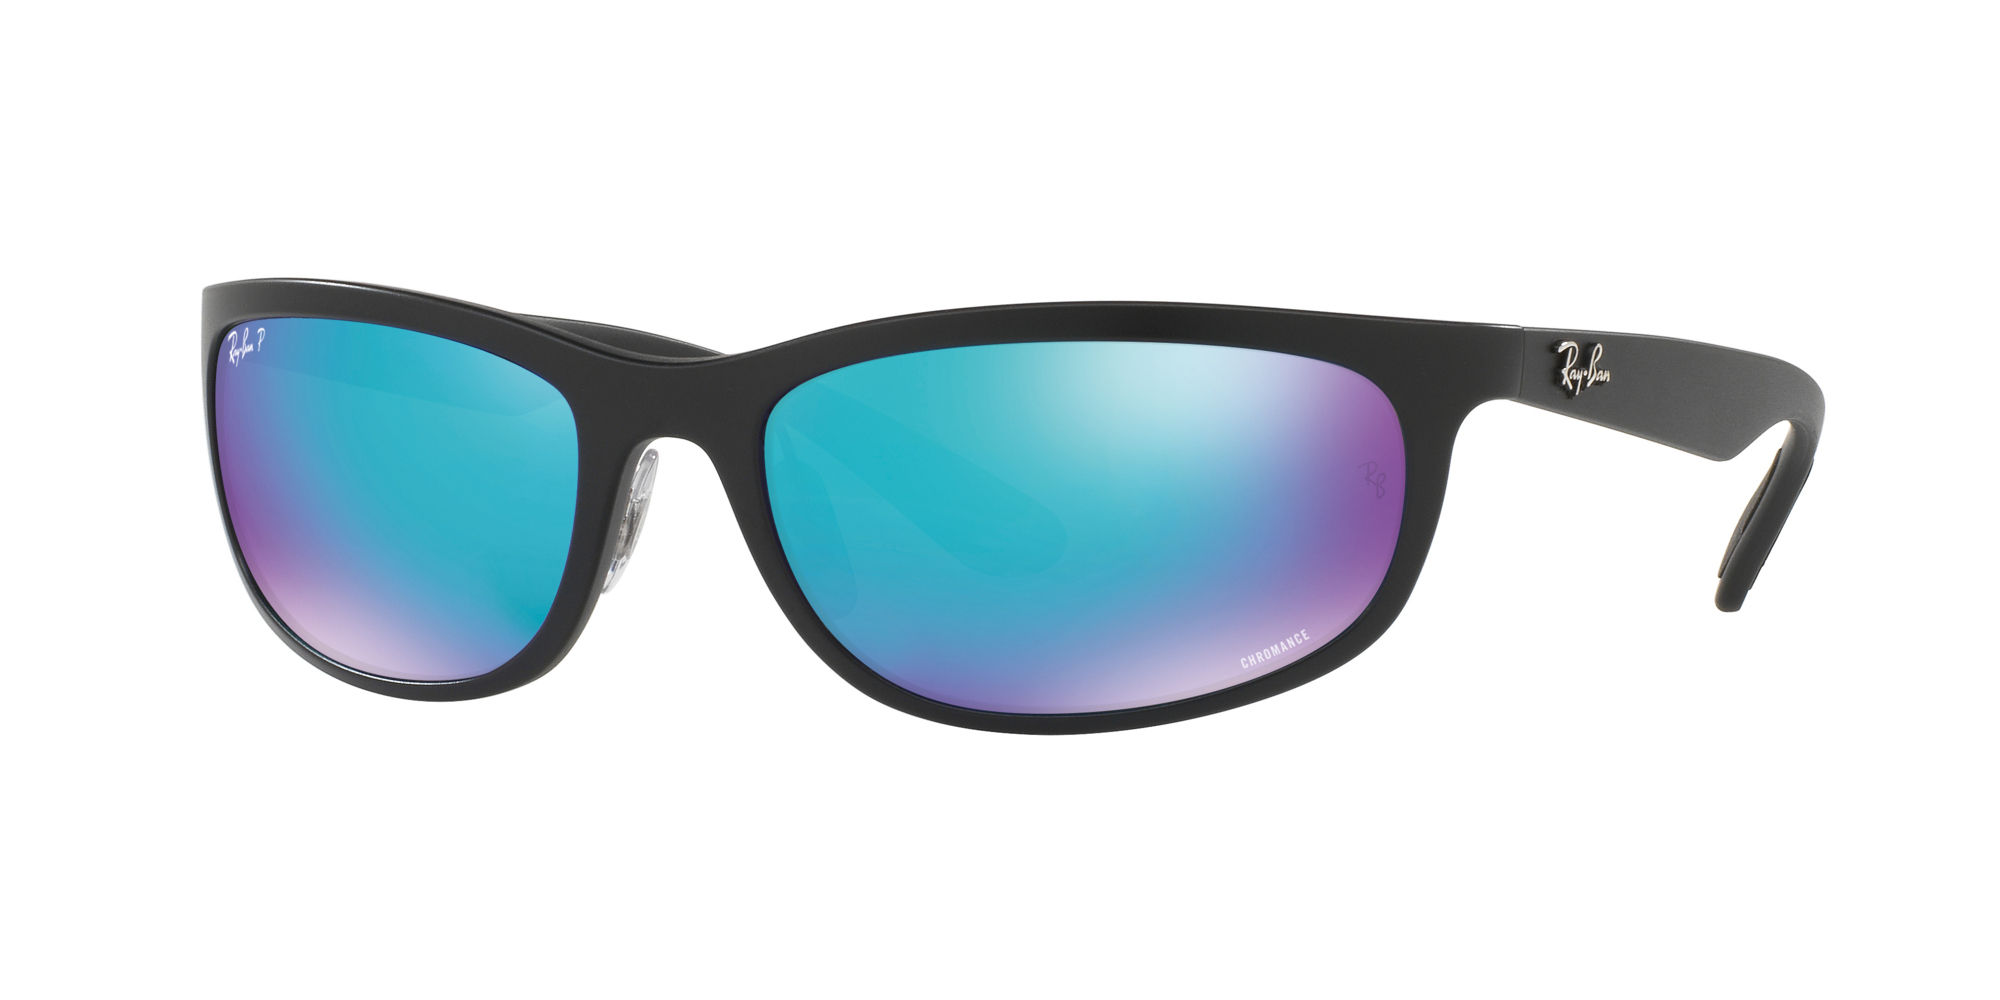 Ray-Ban Blue Mirror Chromance Sunglasses - 0RB4265/601SA1 62 - 19